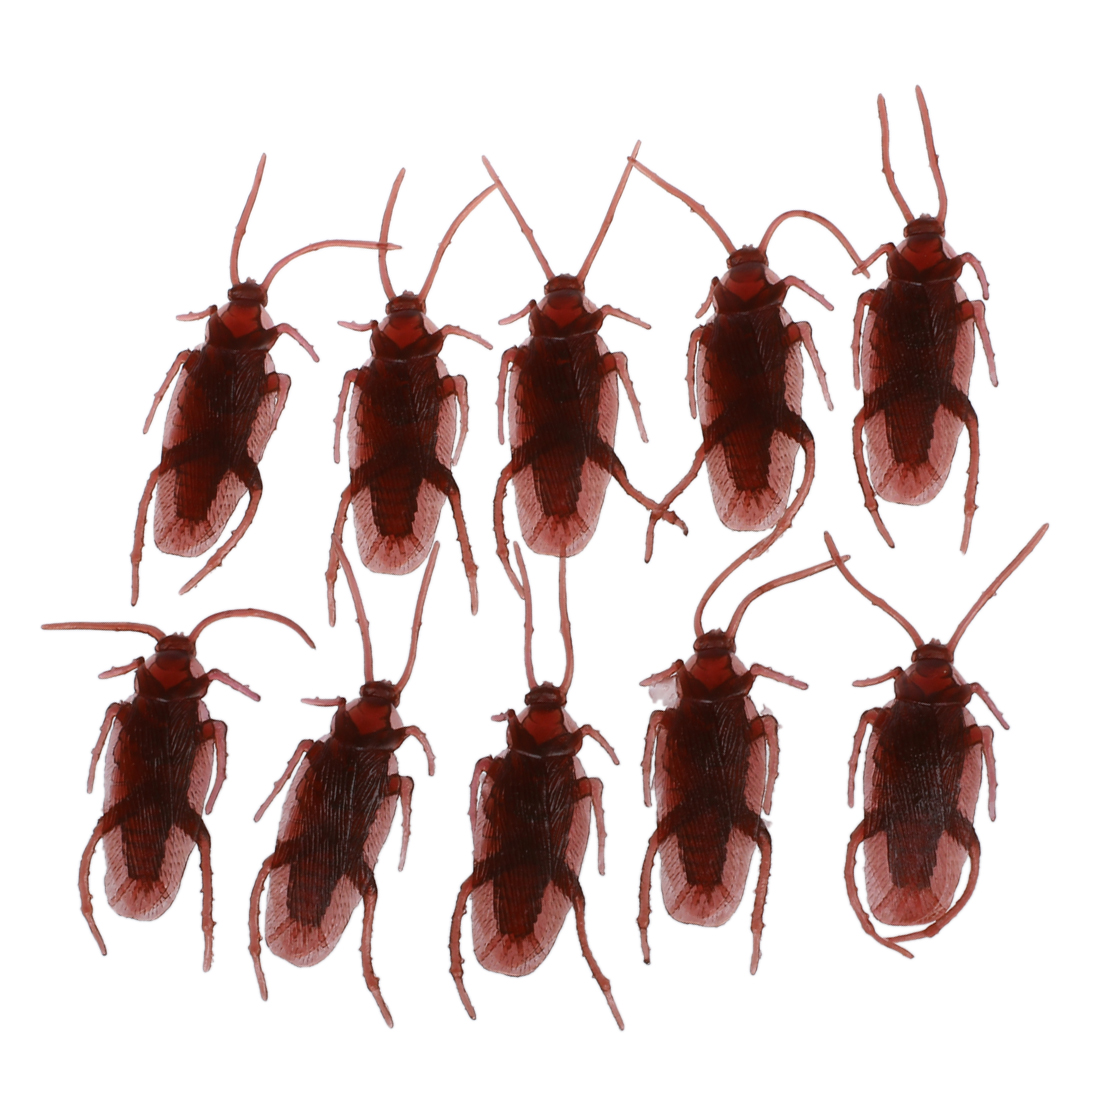 FBIL-10 Fake Roaches Prank Novelty Cockroach Bugs Look Real